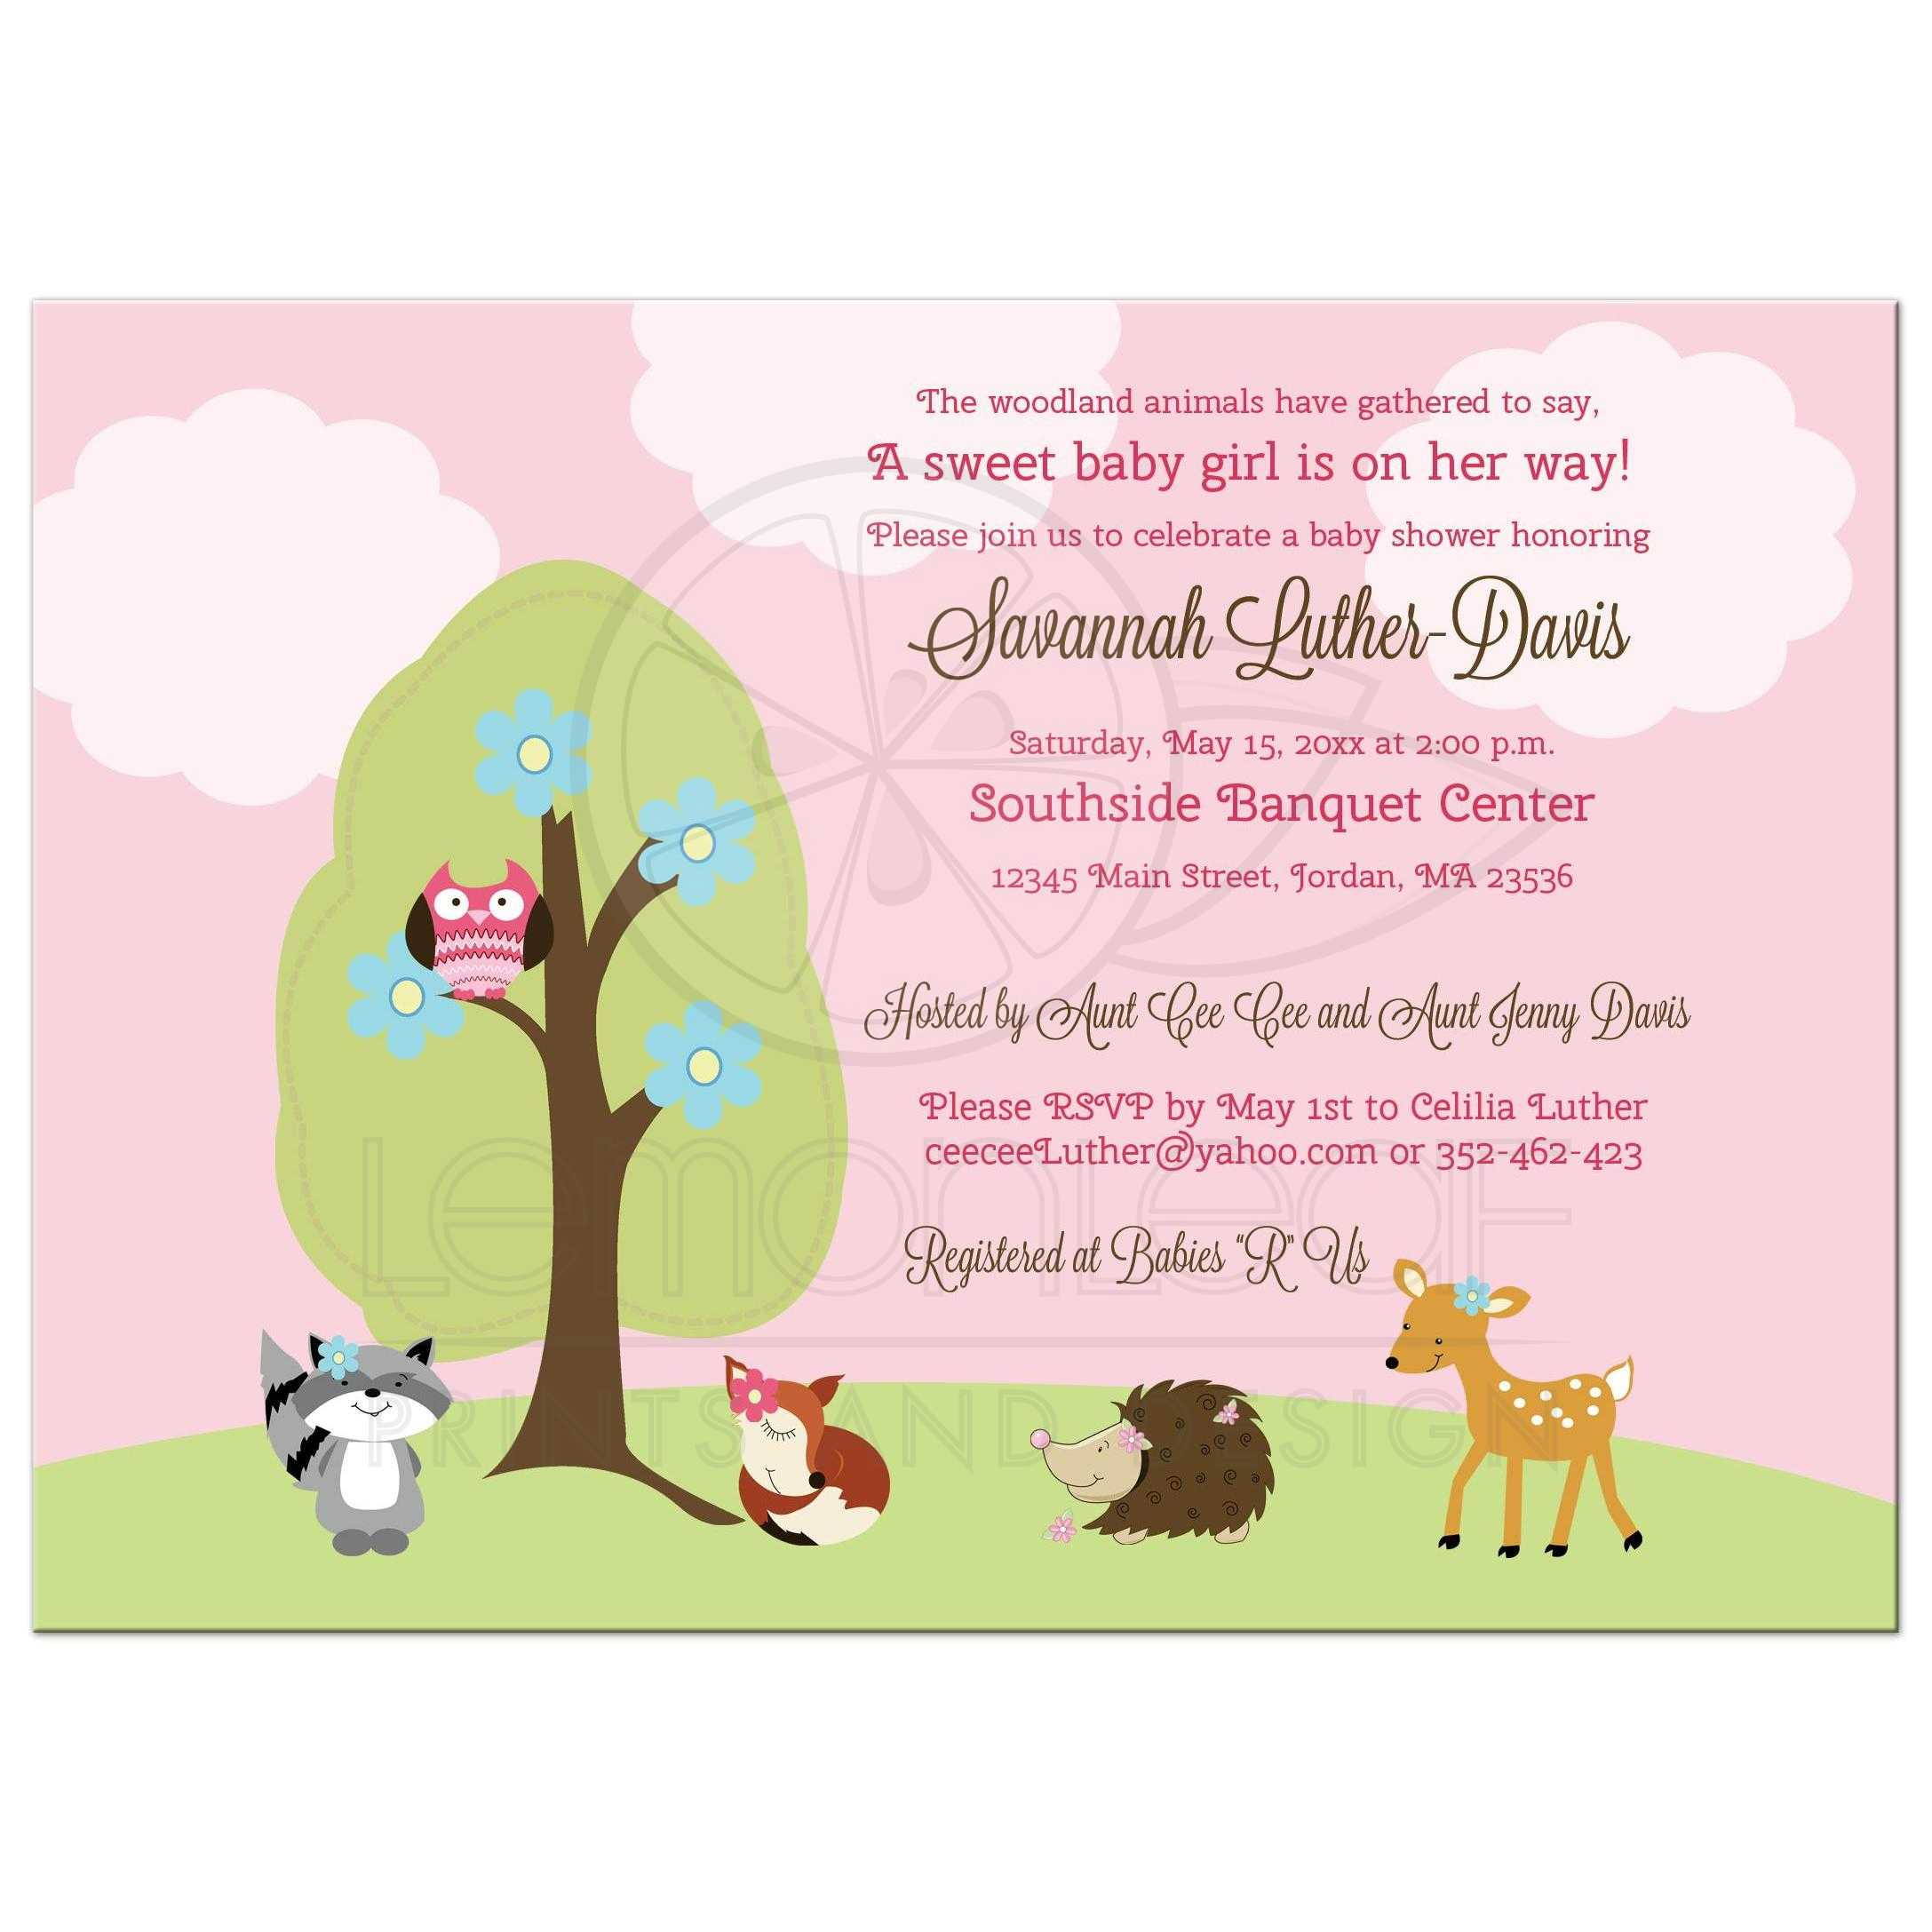 Full Size of Baby Shower:63+ Delightful Cheap Baby Shower Invitations Image Inspirations Cheap Baby Shower Invitations Woodland Forest Animals Baby Shower Invitation